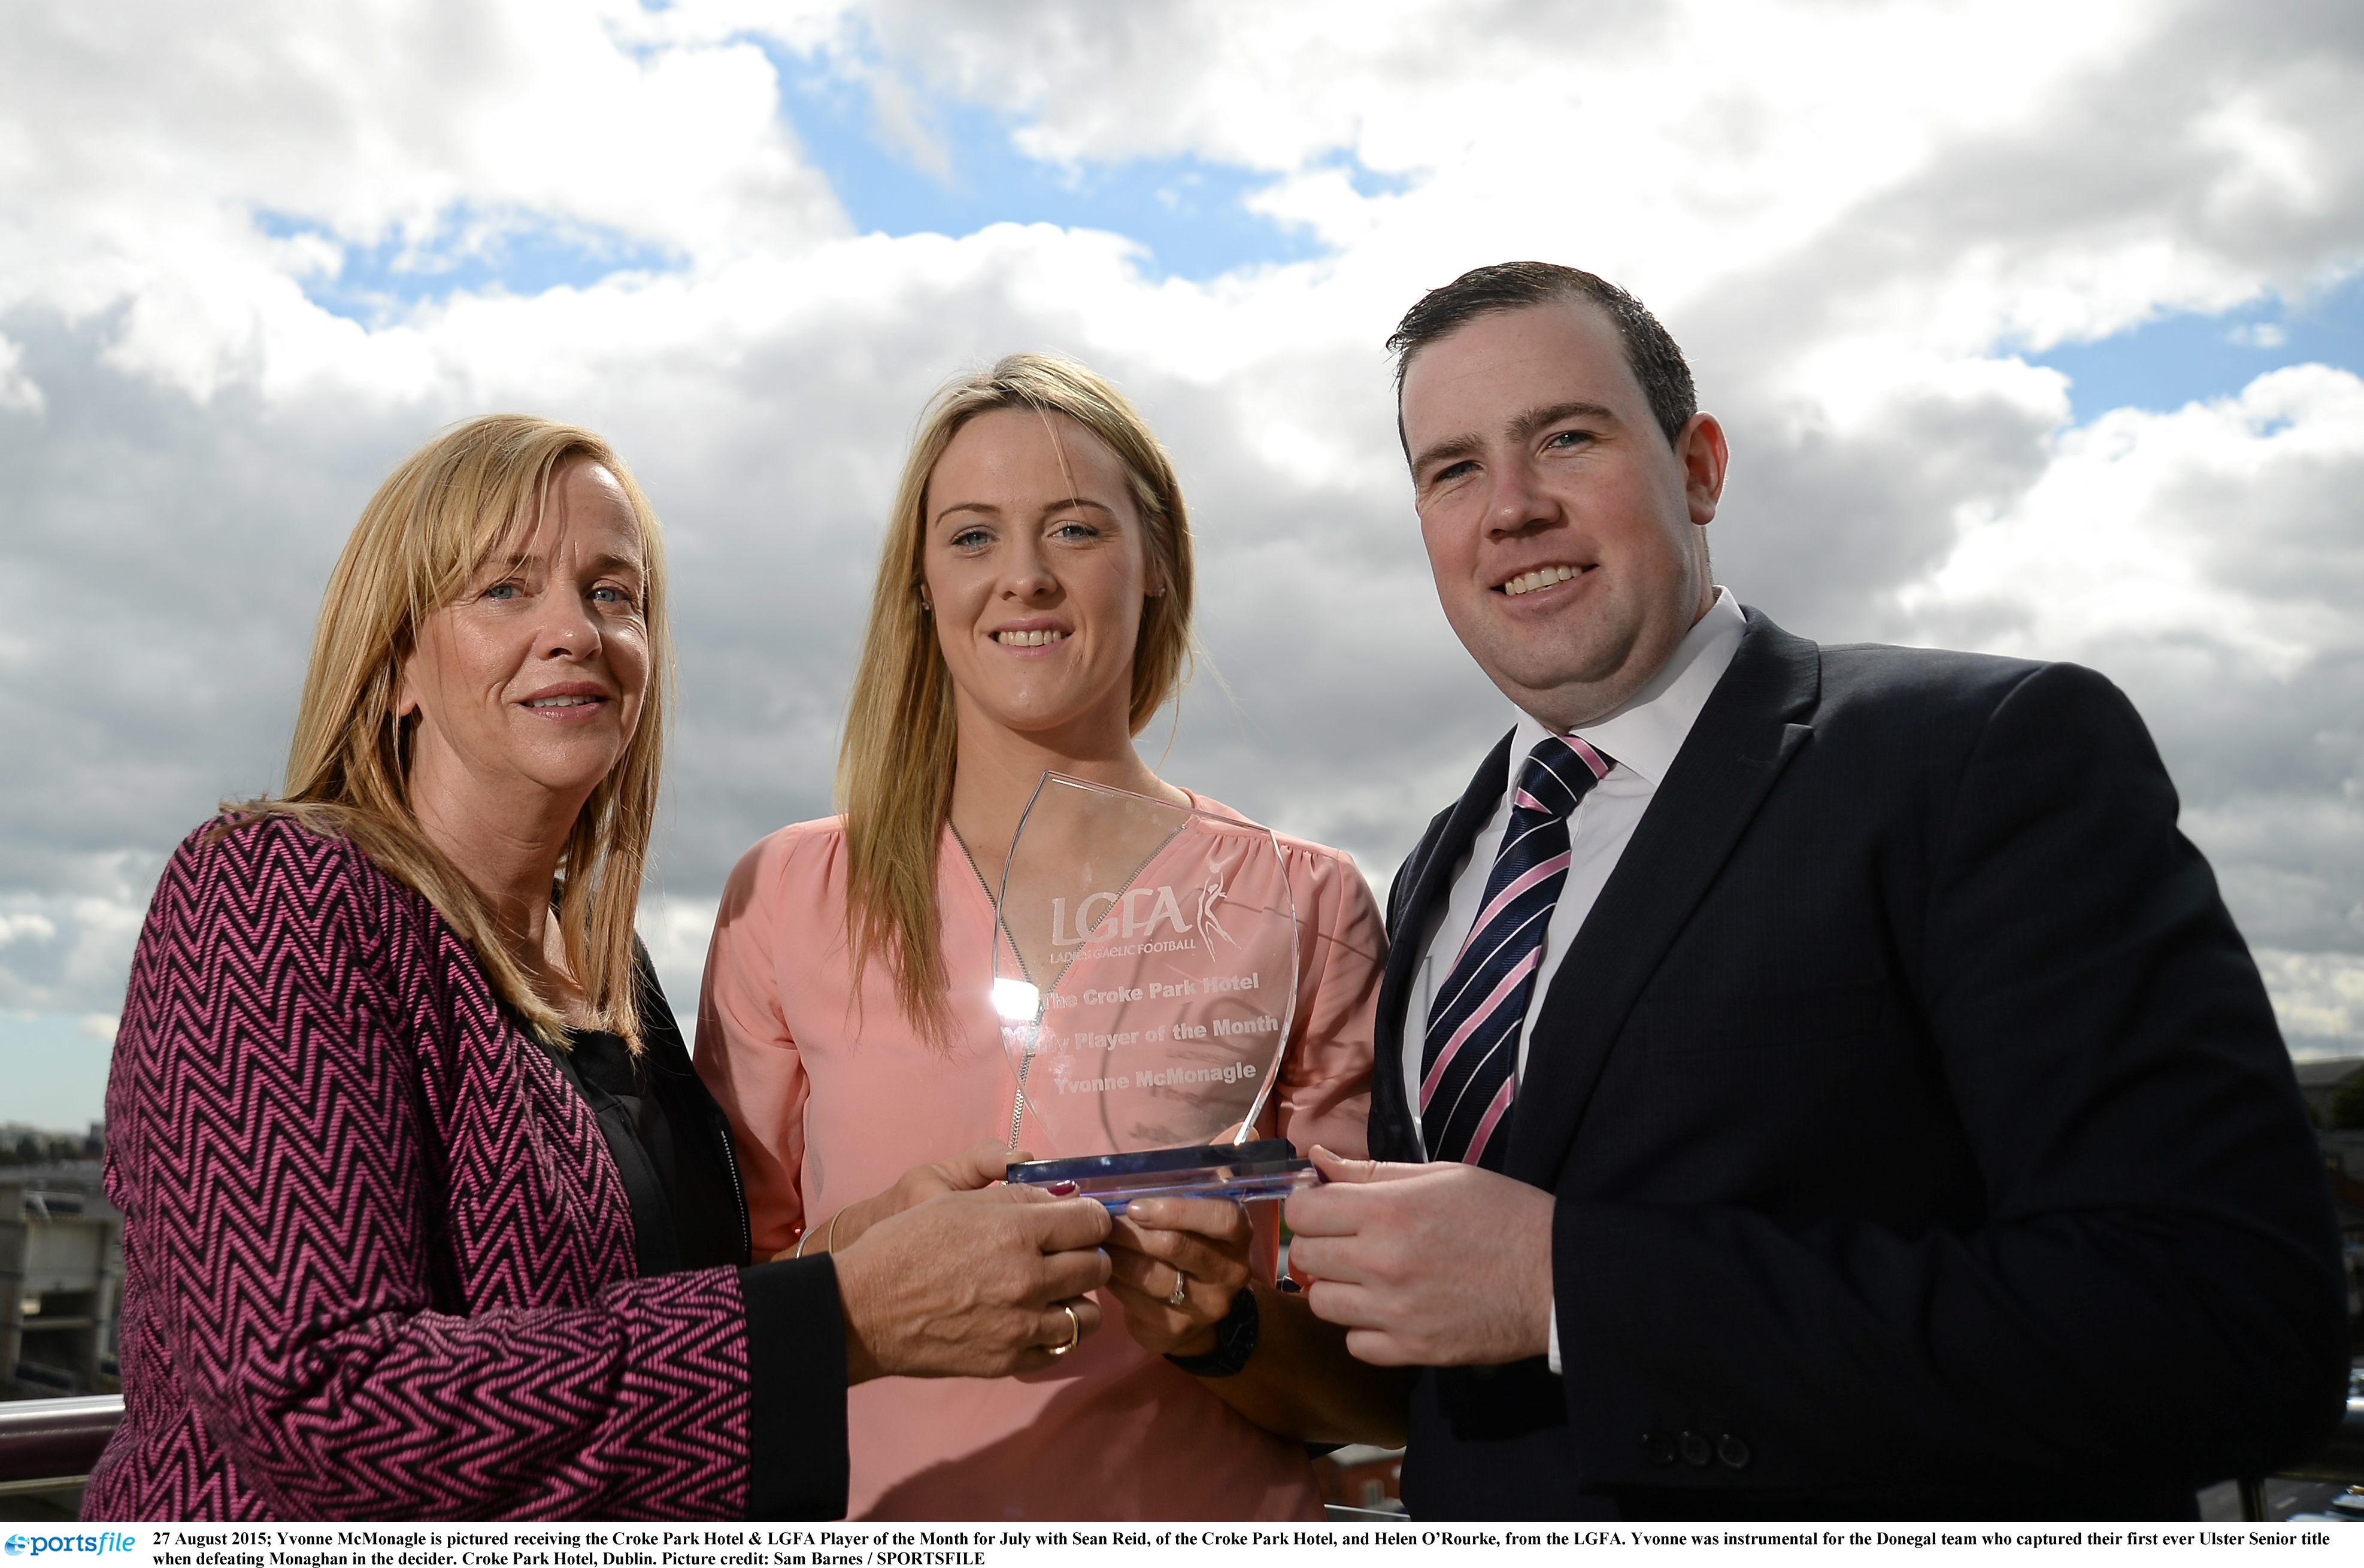 27 August 2015; Yvonne McMonagle is pictured receiving the Croke Park Hotel & LGFA Player of the Month for July with Sean Reid, of the Croke Park Hotel, and Helen O'Rourke, from the LGFA. Yvonne was instrumental for the Donegal team who captured their first ever Ulster Senior title when defeating Monaghan in the decider. Croke Park Hotel, Dublin. Picture credit: Sam Barnes / SPORTSFILE